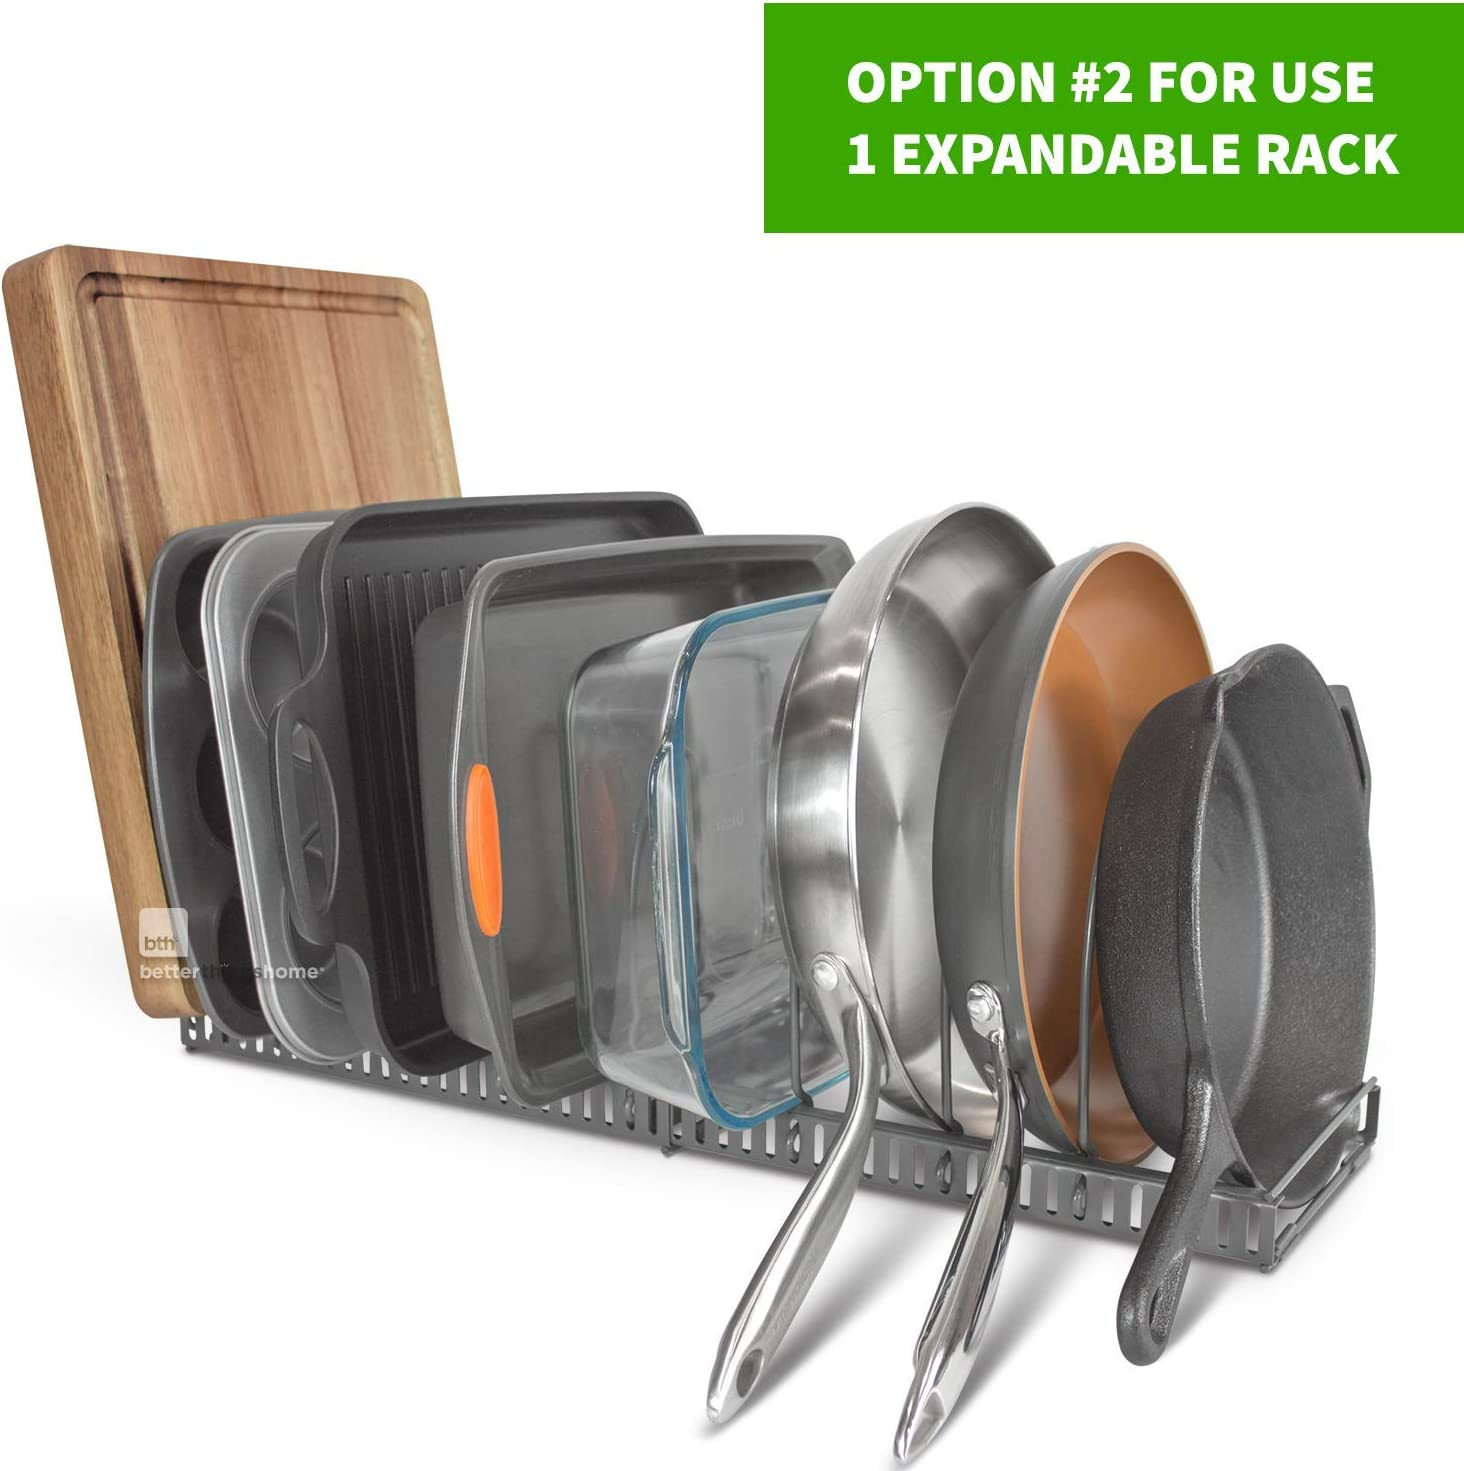 Pantry Cupboard Bakeware Lid Plate Holder Total 7 Adjustable Compartments betterthingshome 7+ Pans Expandable Pan Organizer Rack: Can Be Extended to 56.5 cm 7+ Pan Organizer